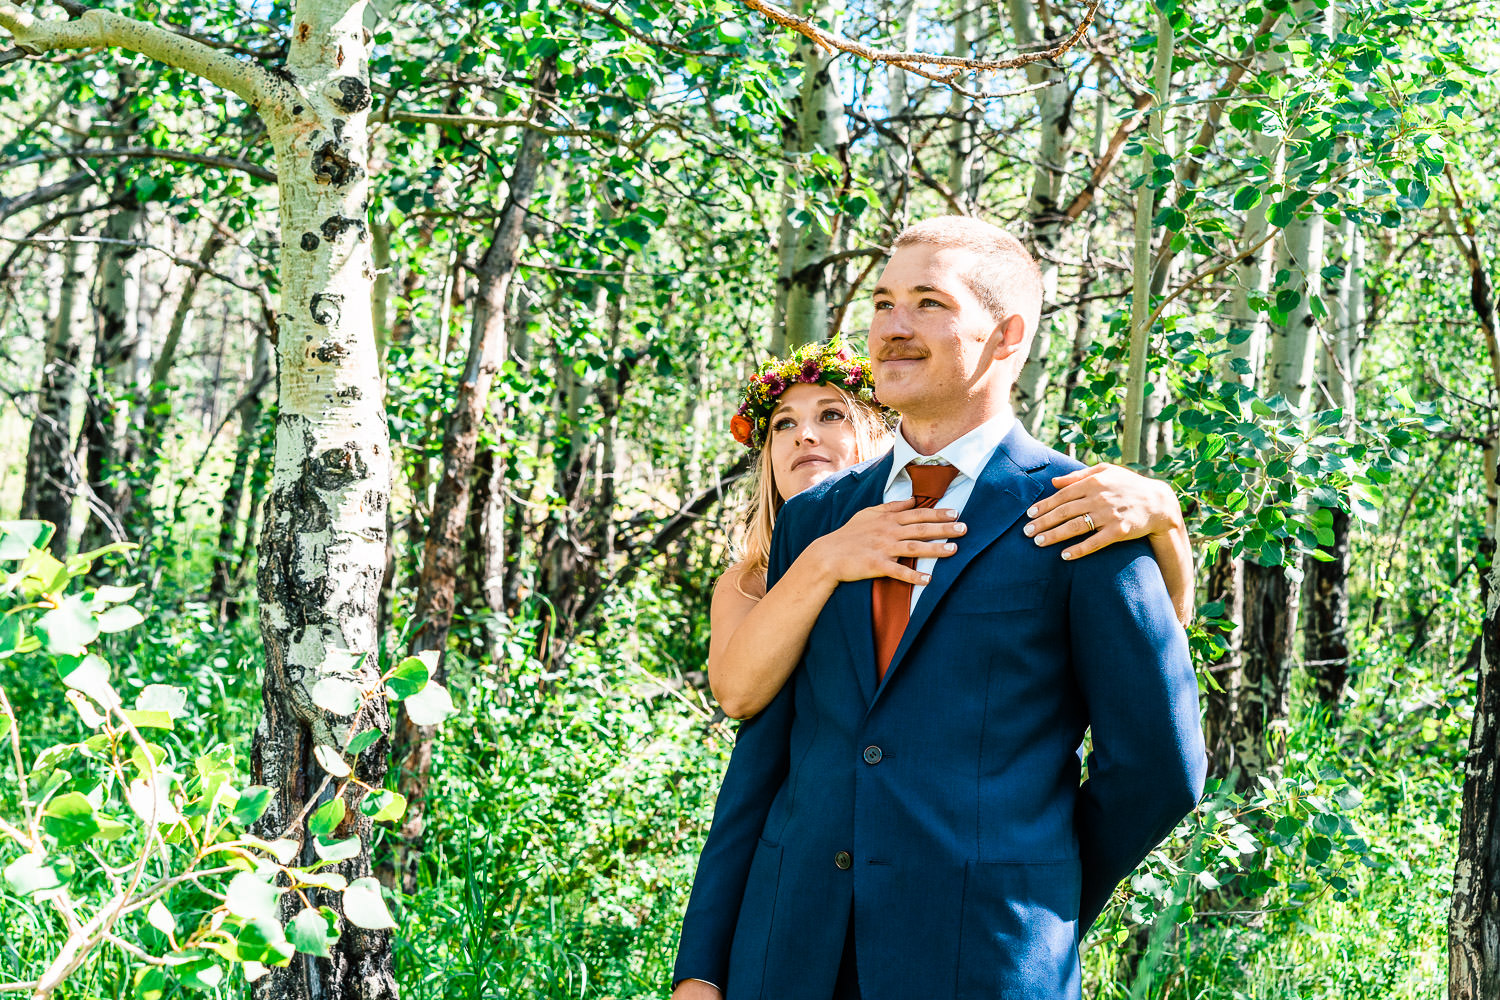 Sprague Lake Elopement | Run Wild With Me Photography 2